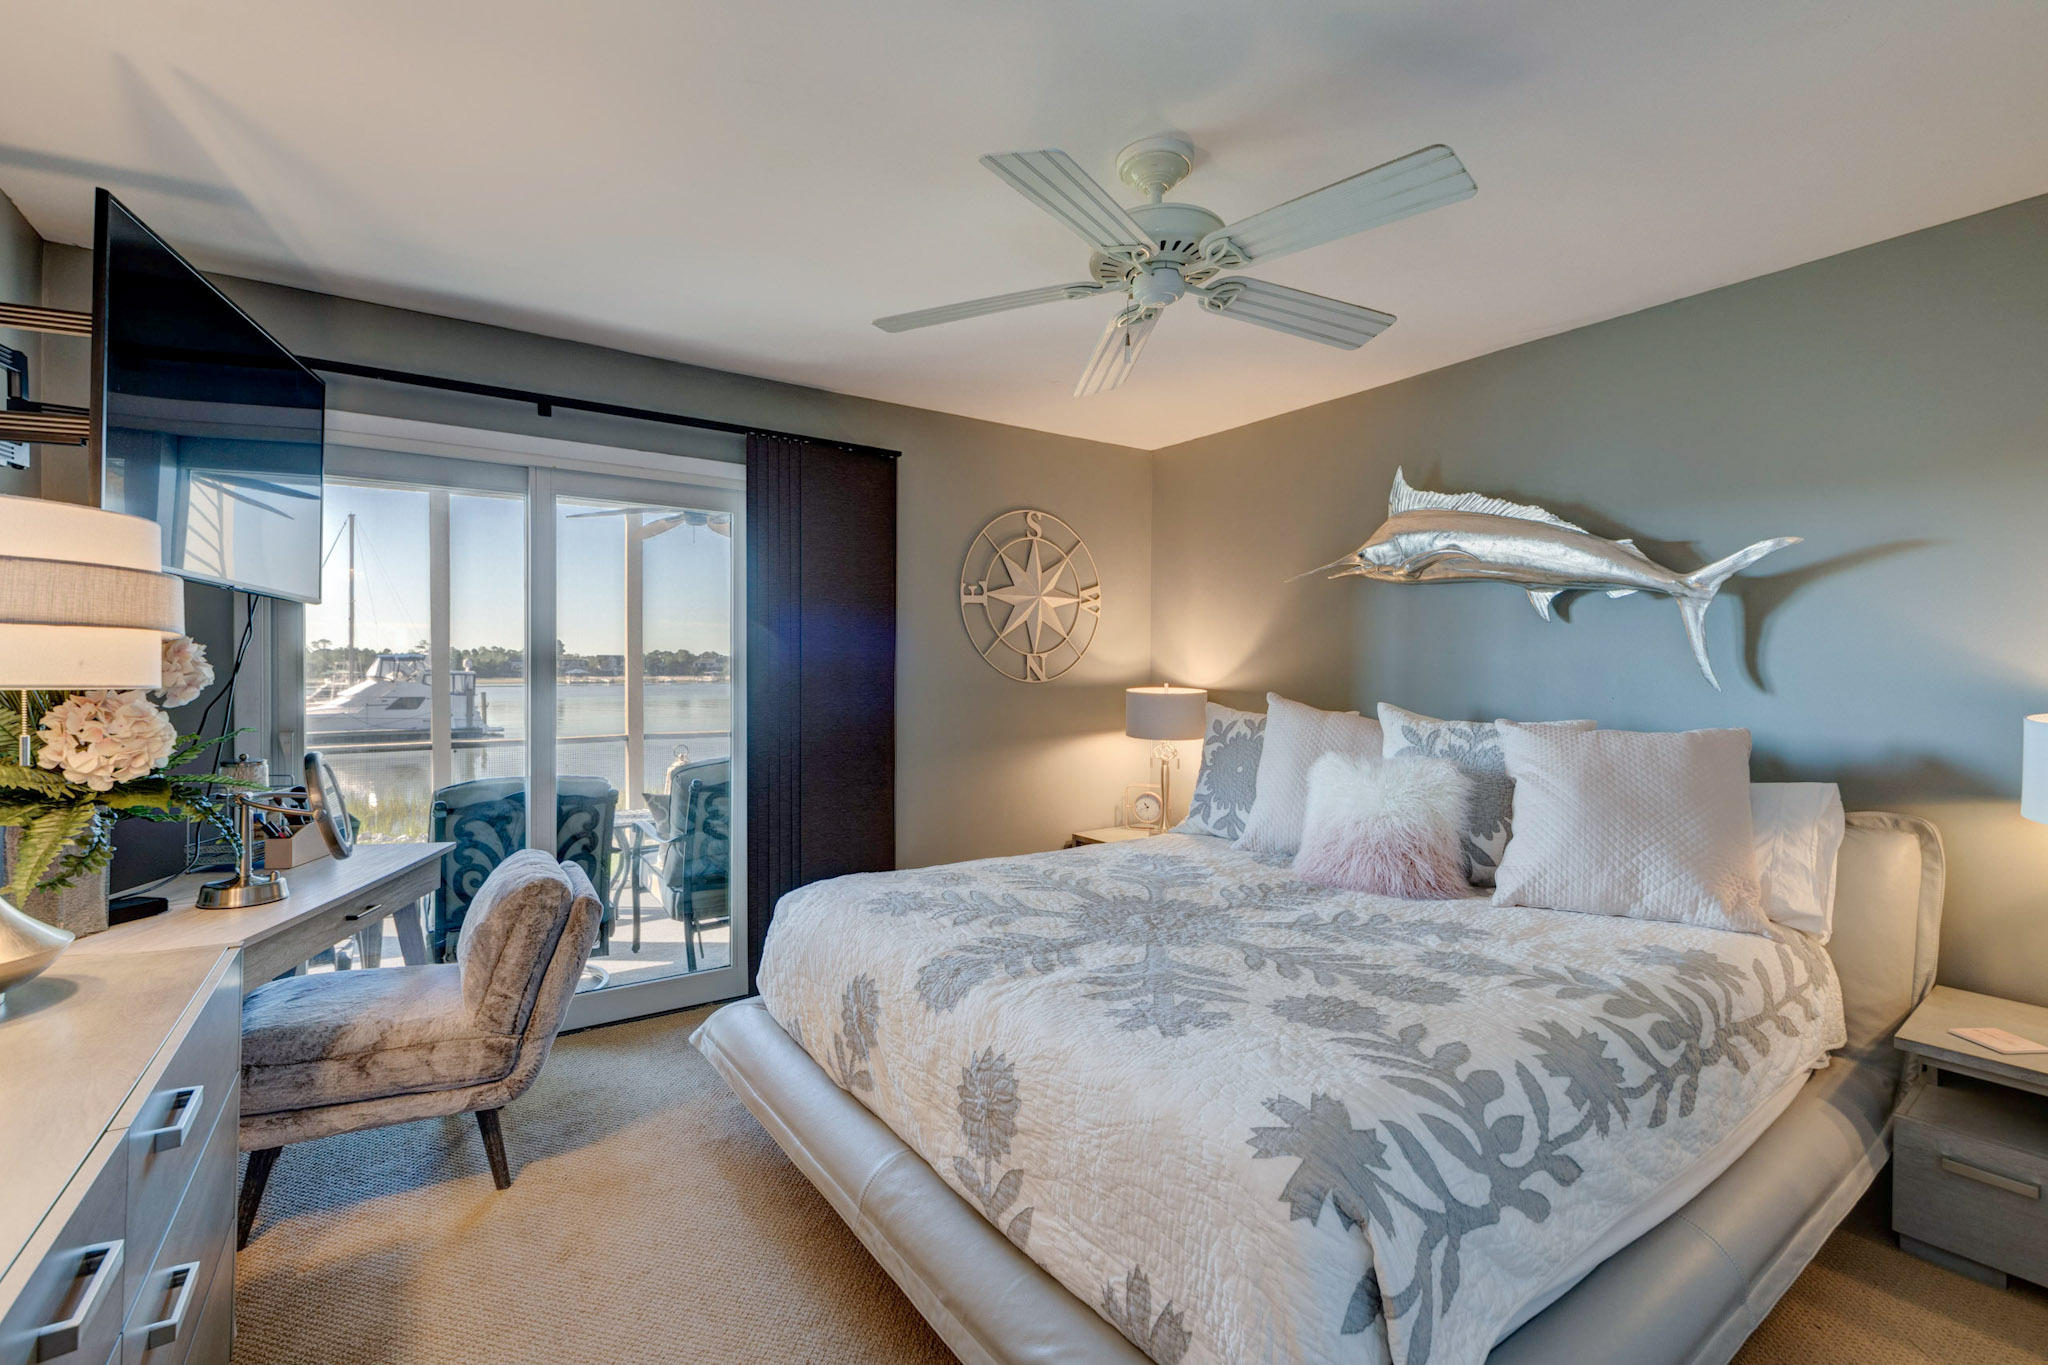 Mariners Cay Homes For Sale - 76 Mariners Cay, Folly Beach, SC - 5